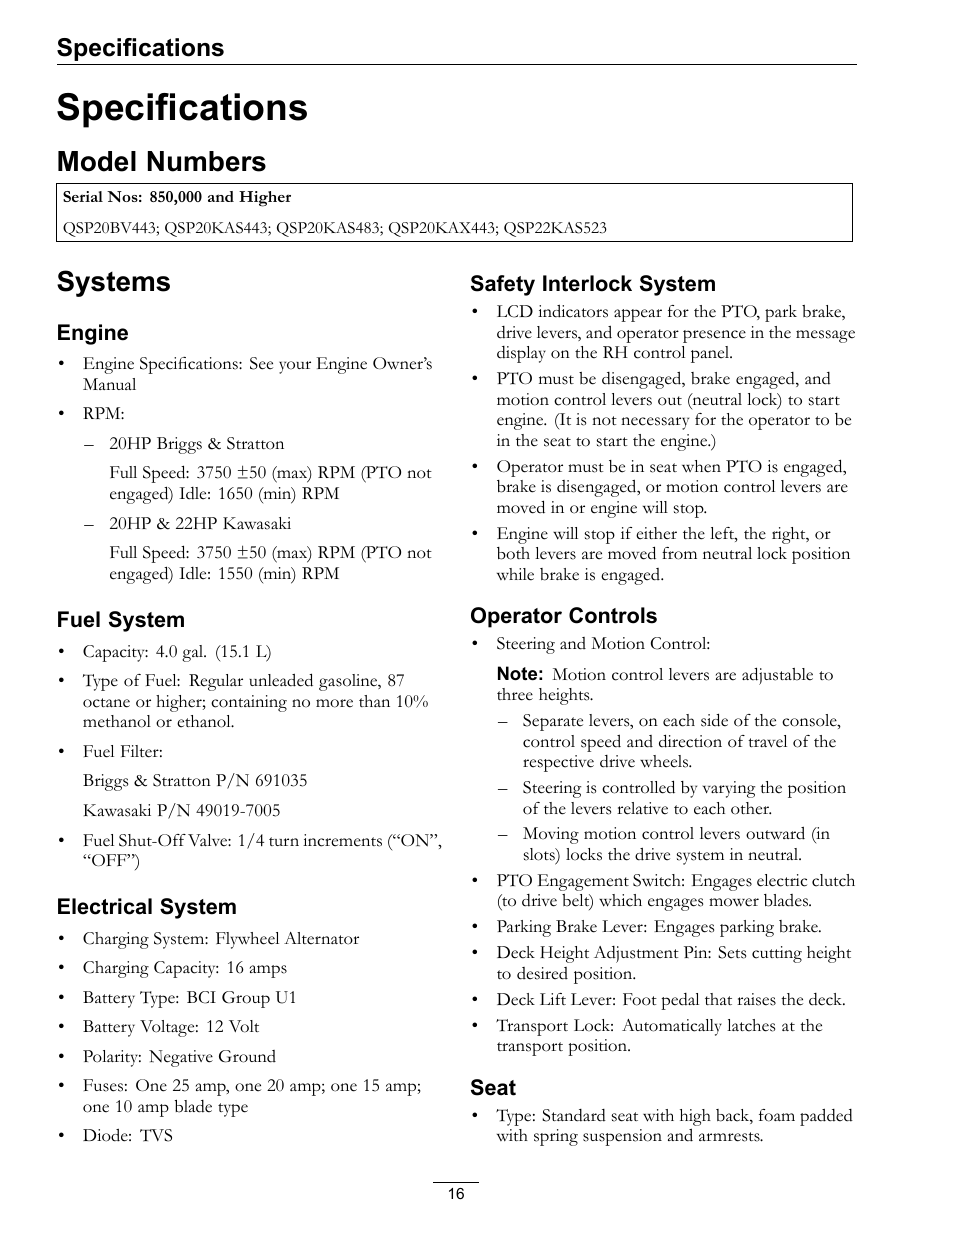 Specifications, Model numbers systems, Model numbers